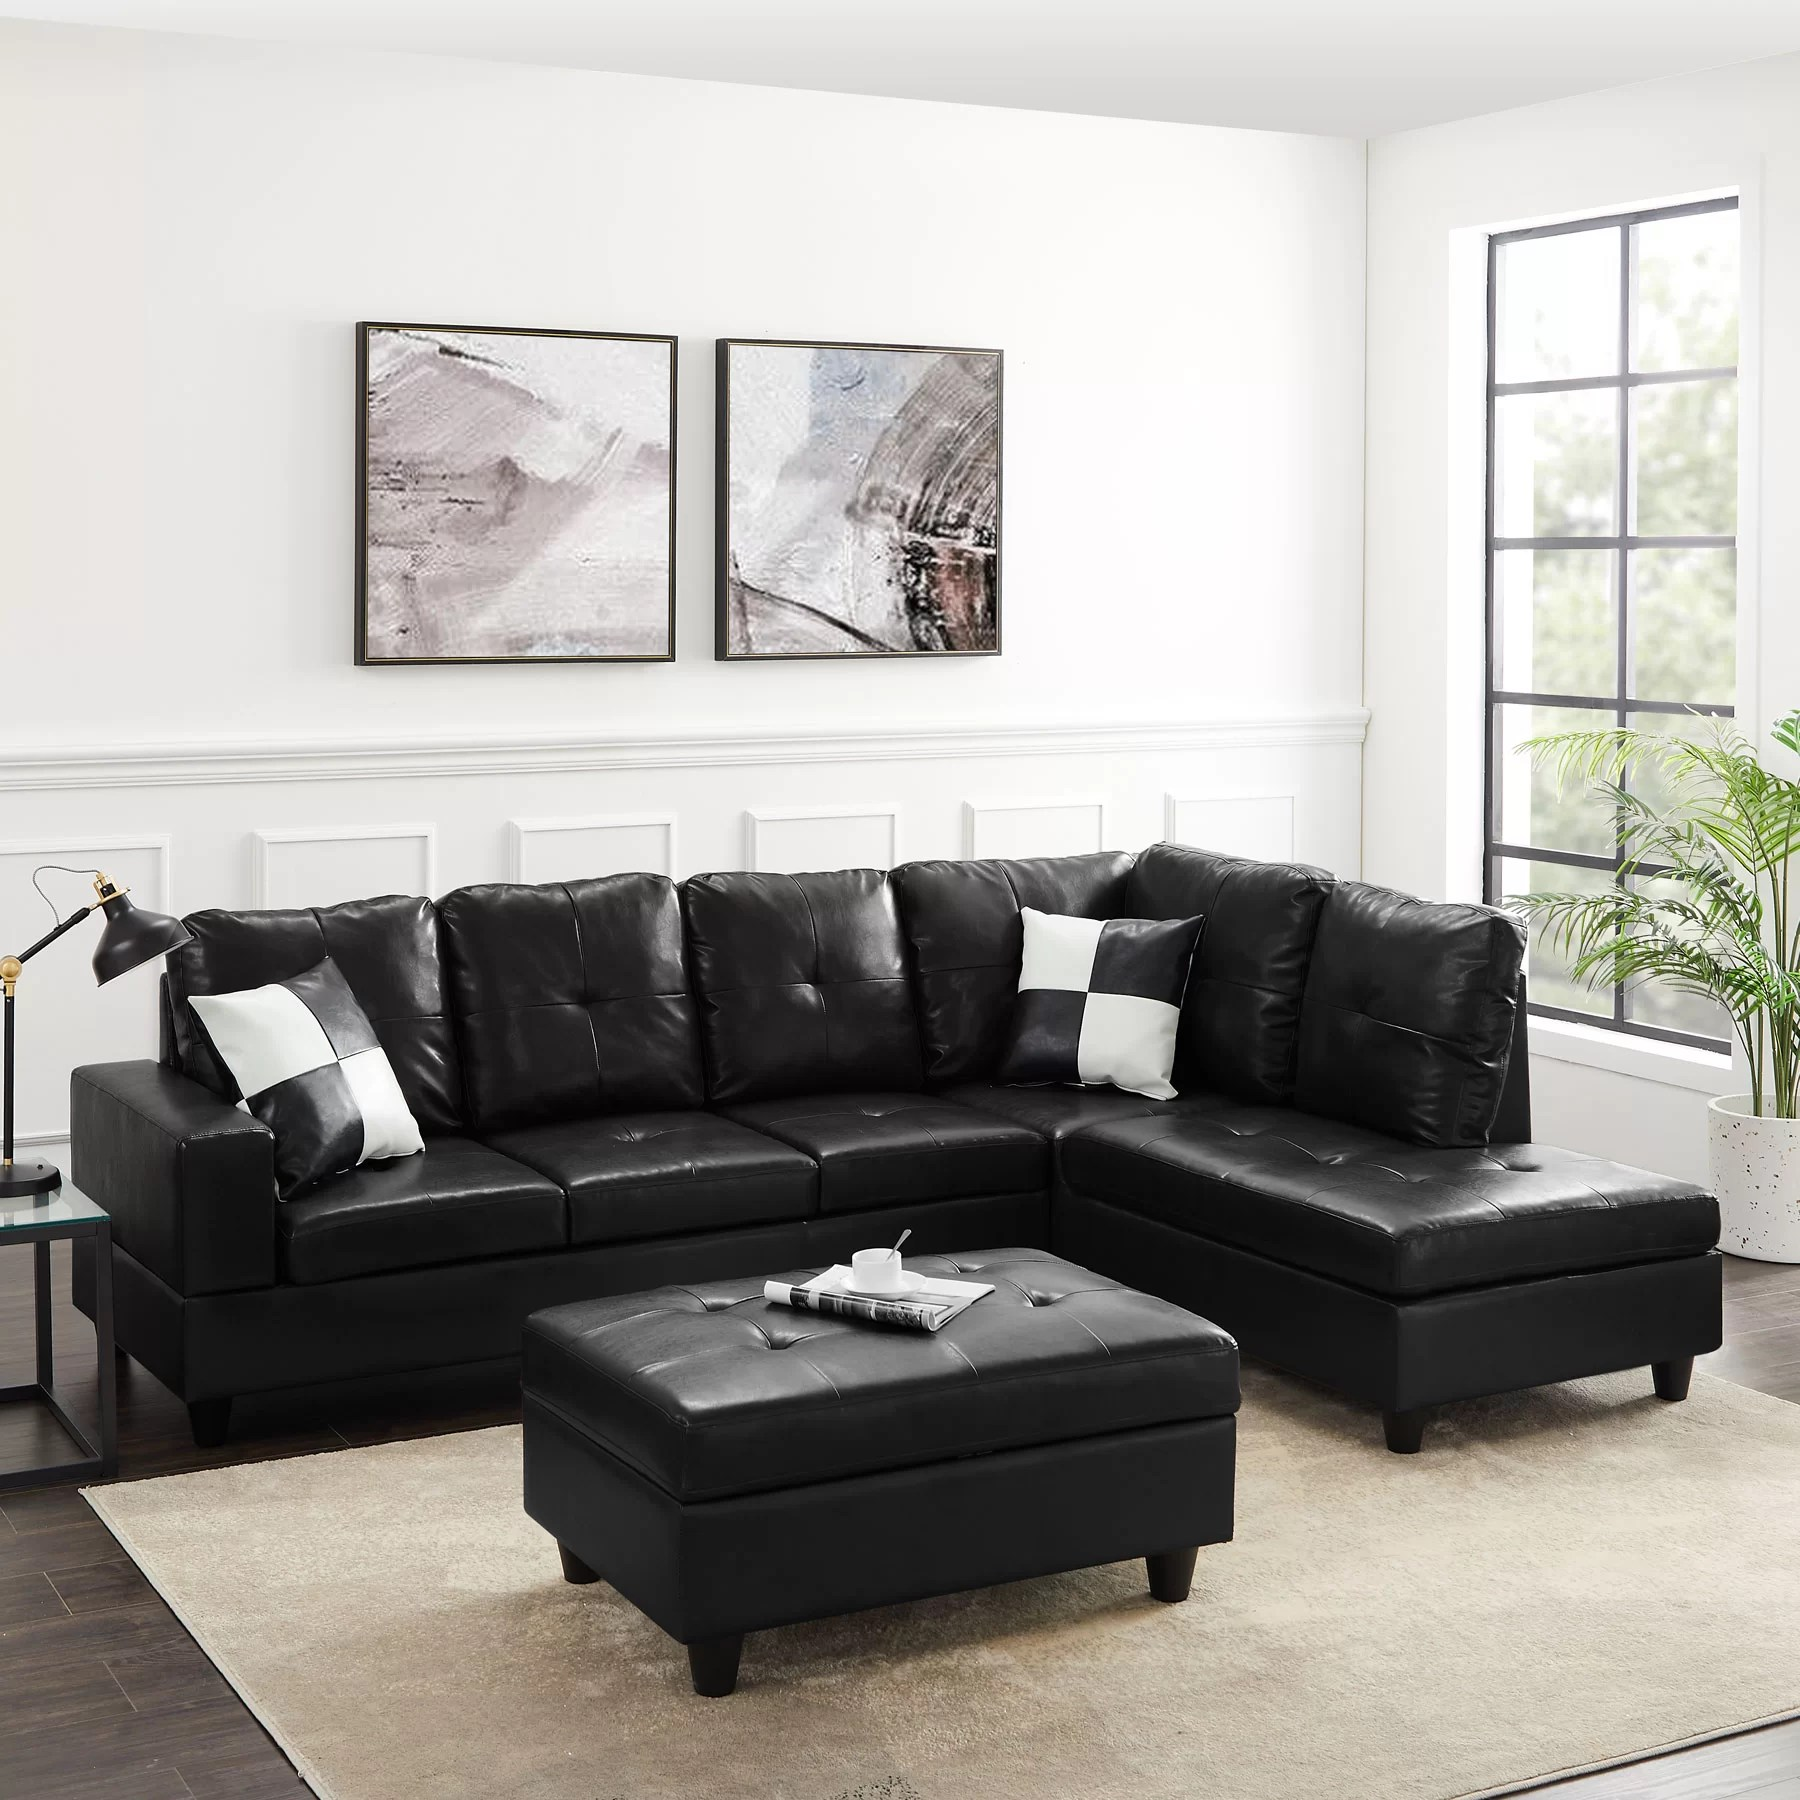 amhad 101 96 faux leather sofa chaise sectional with ottoman